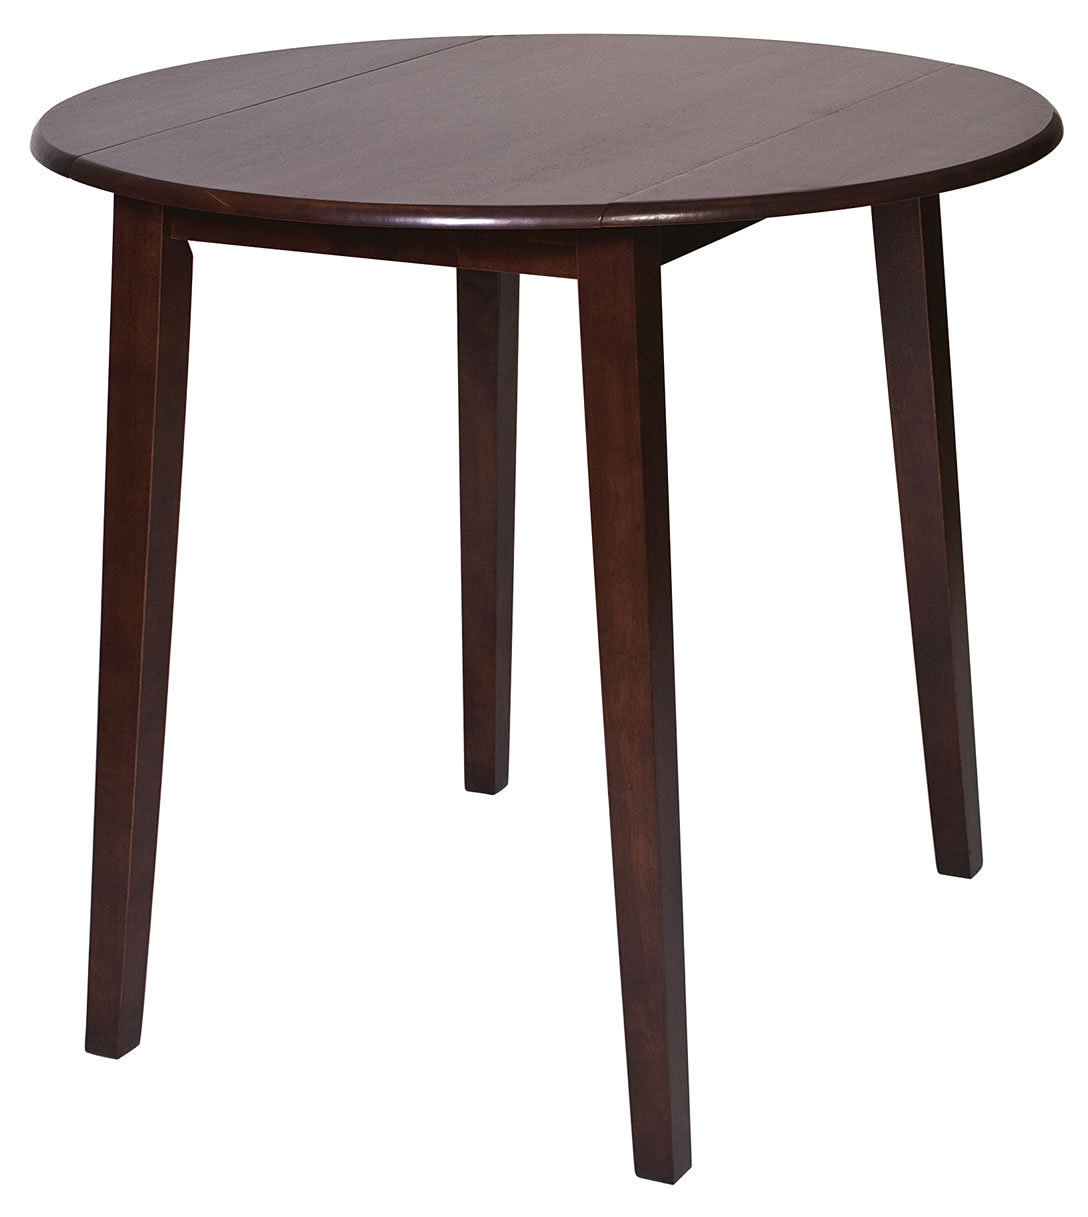 for Round wood dining table with leaf